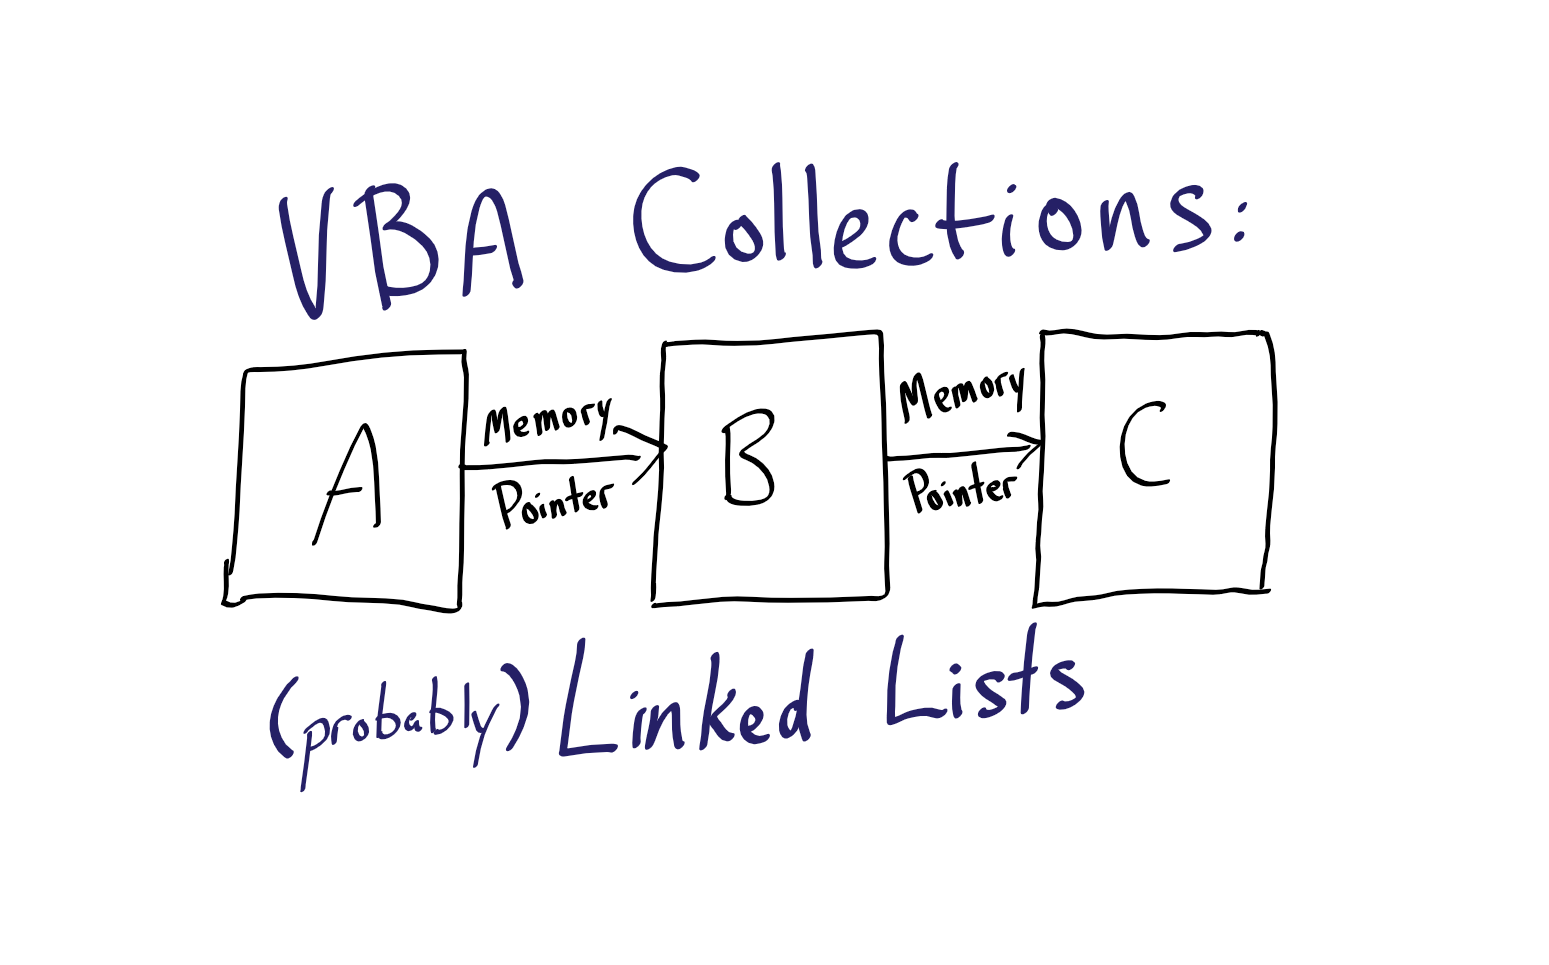 VBA Collections: AKA, Linked Lists